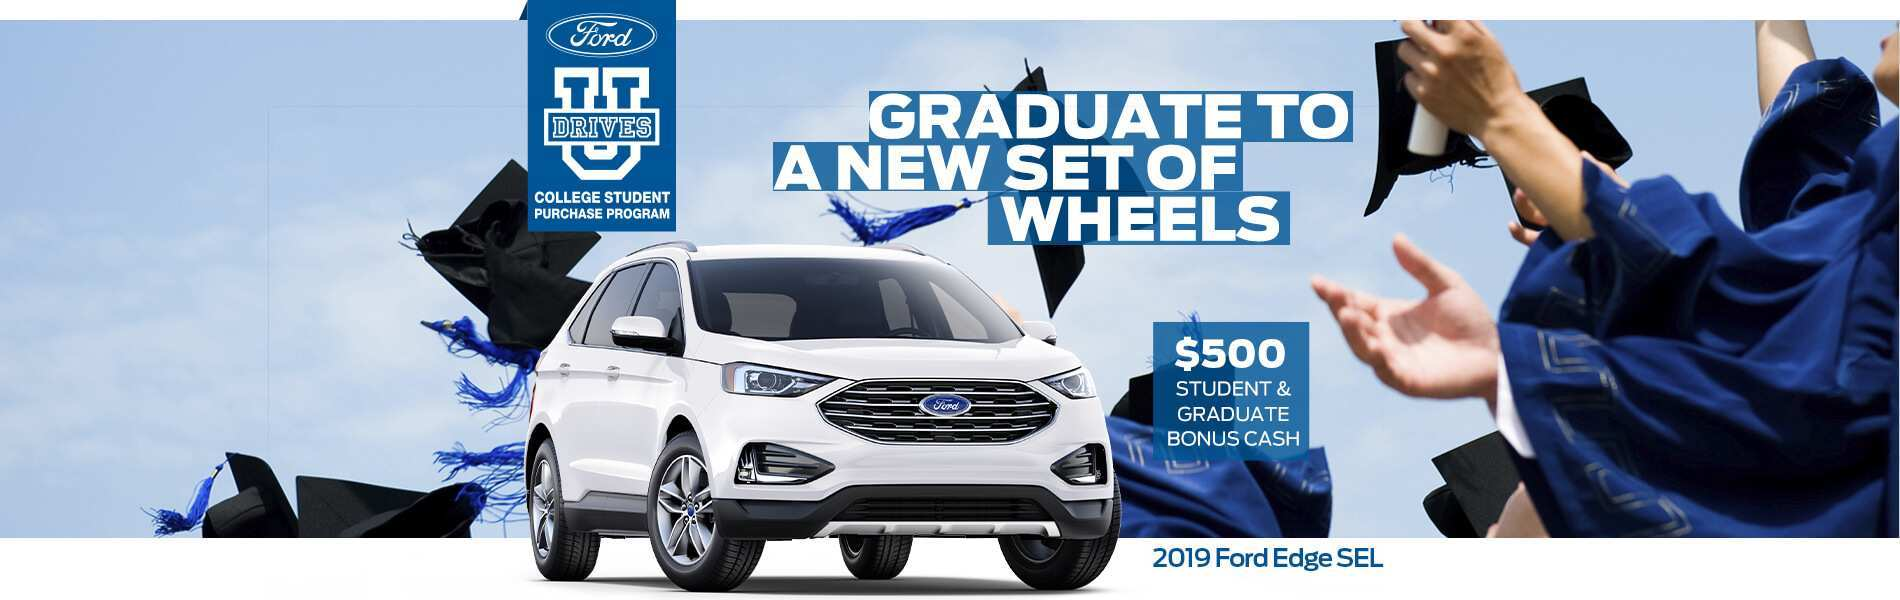 74 New Ford Graduate Program 2020 Research New by Ford Graduate Program 2020